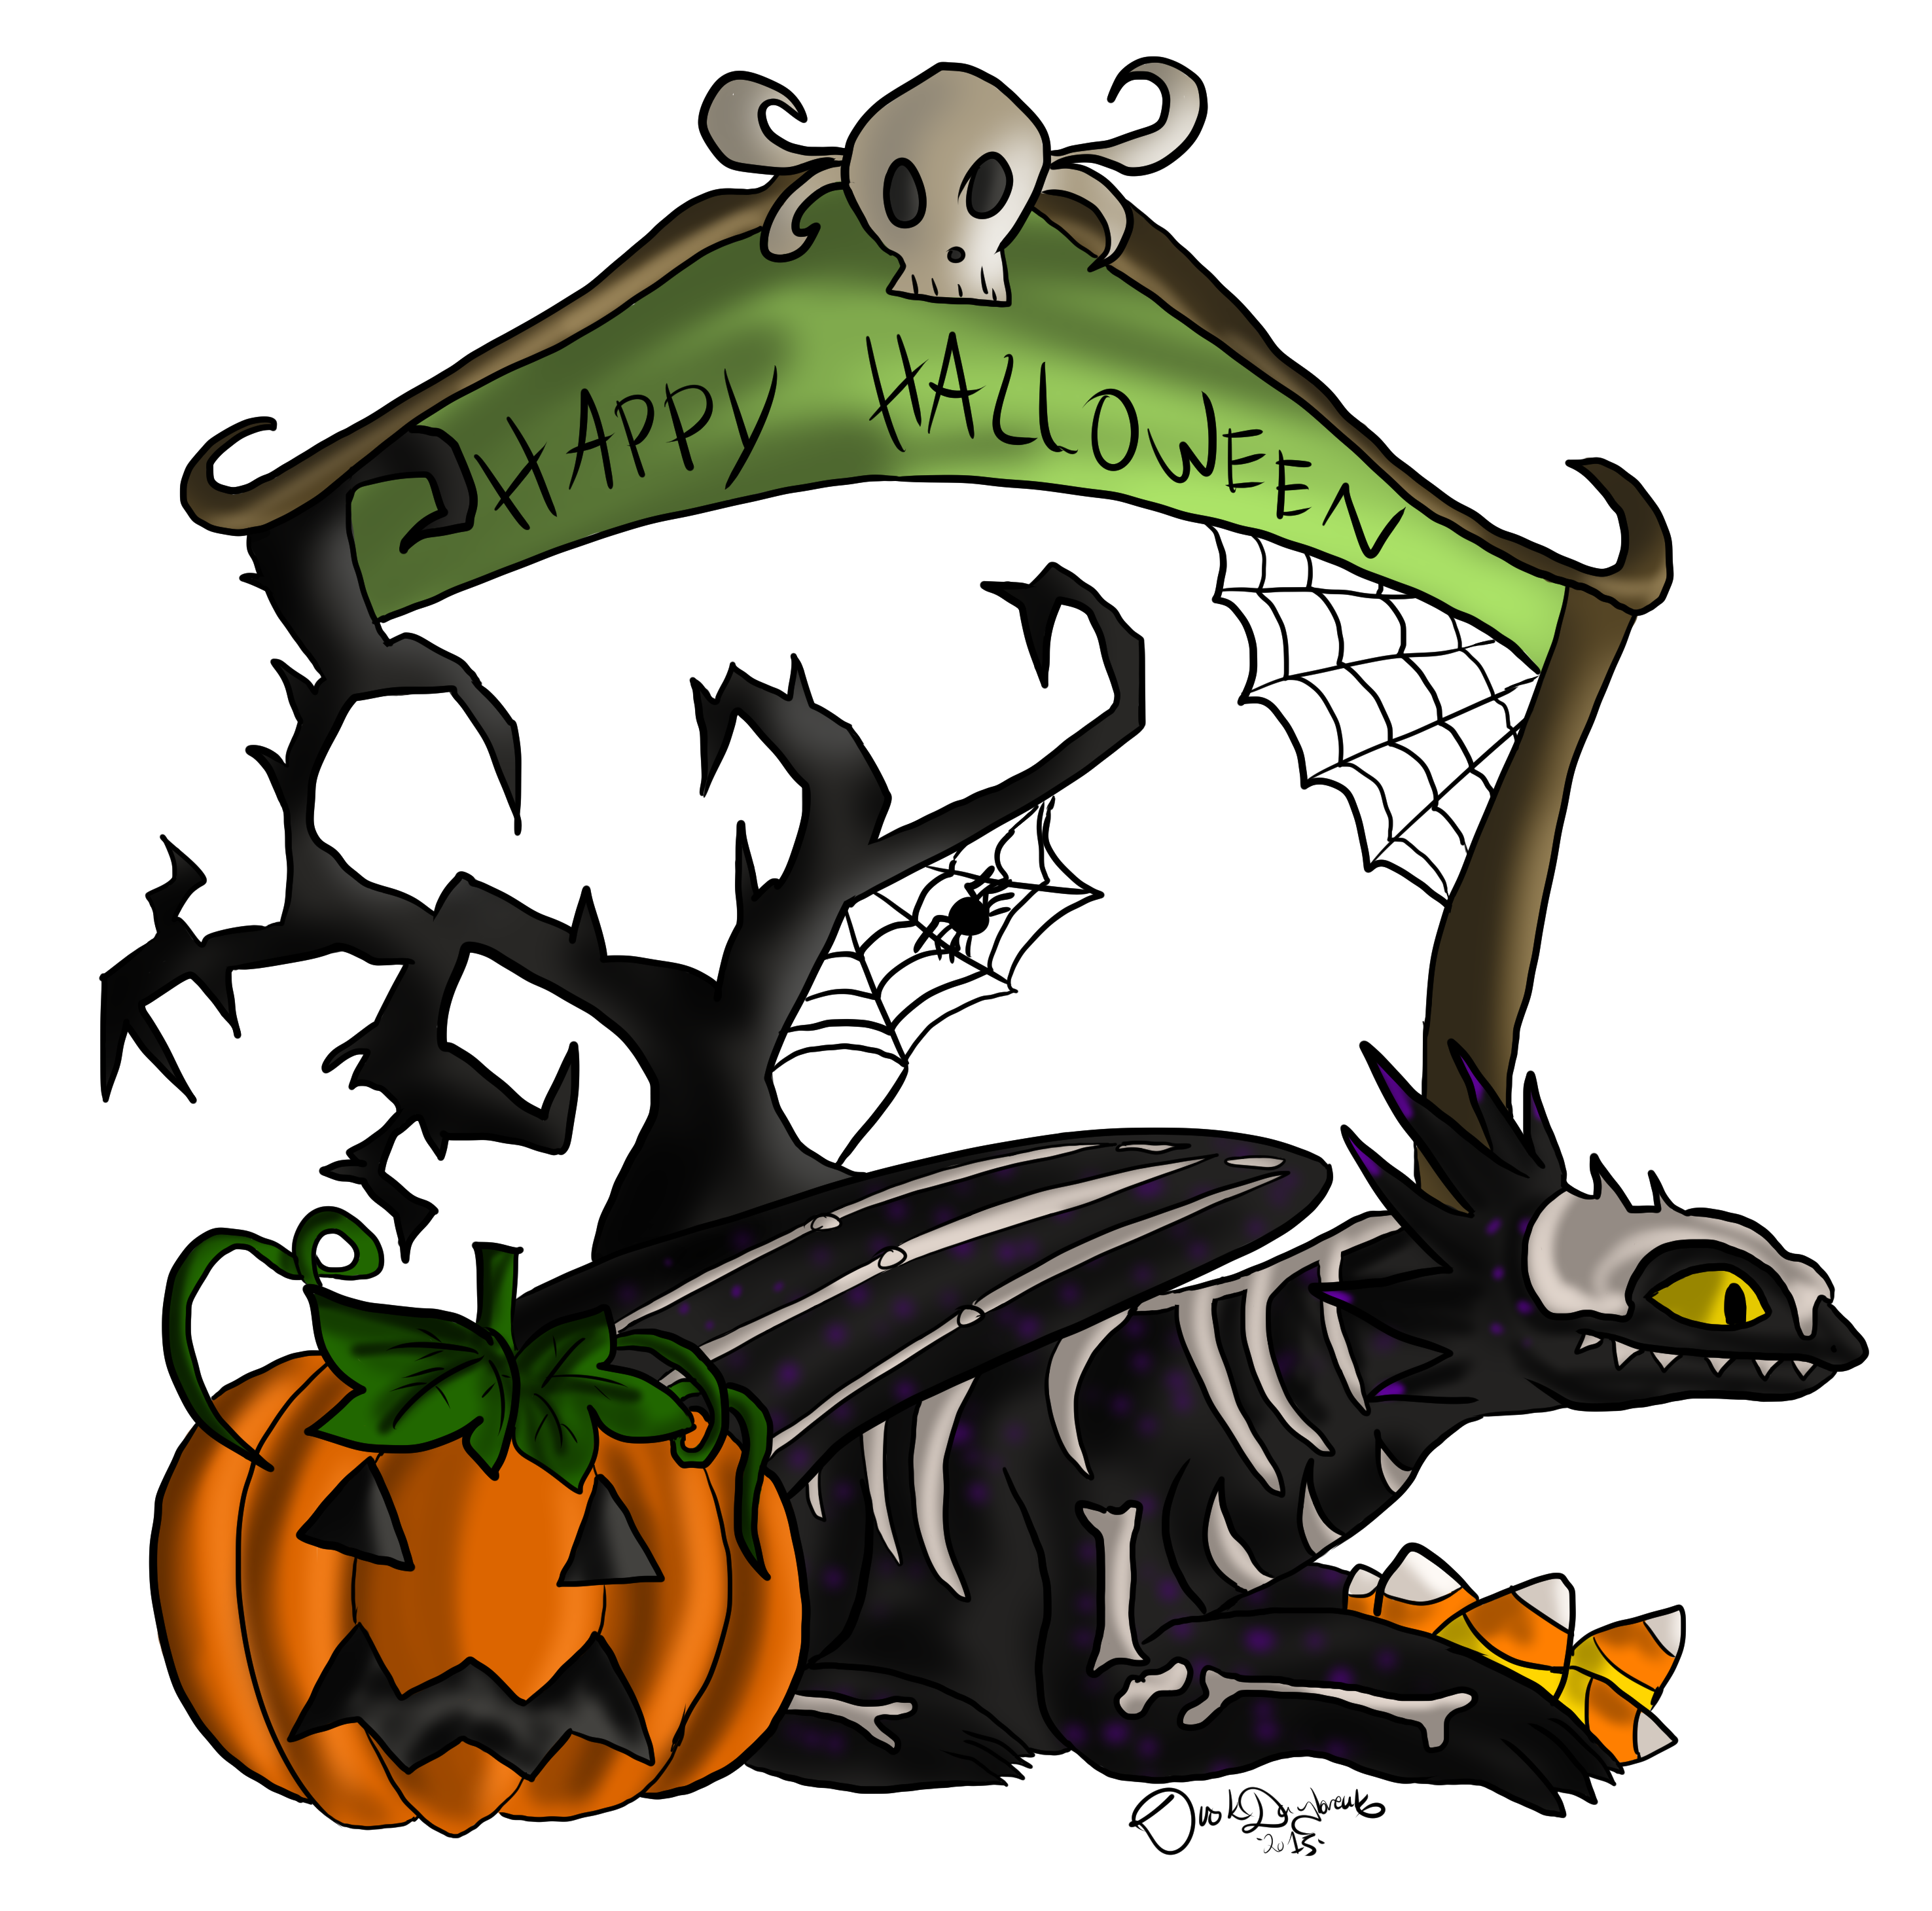 Neon ghost clipart for halloween picture download Halloween Dragon Requests   School of Dragons   How to Train Your ... picture download